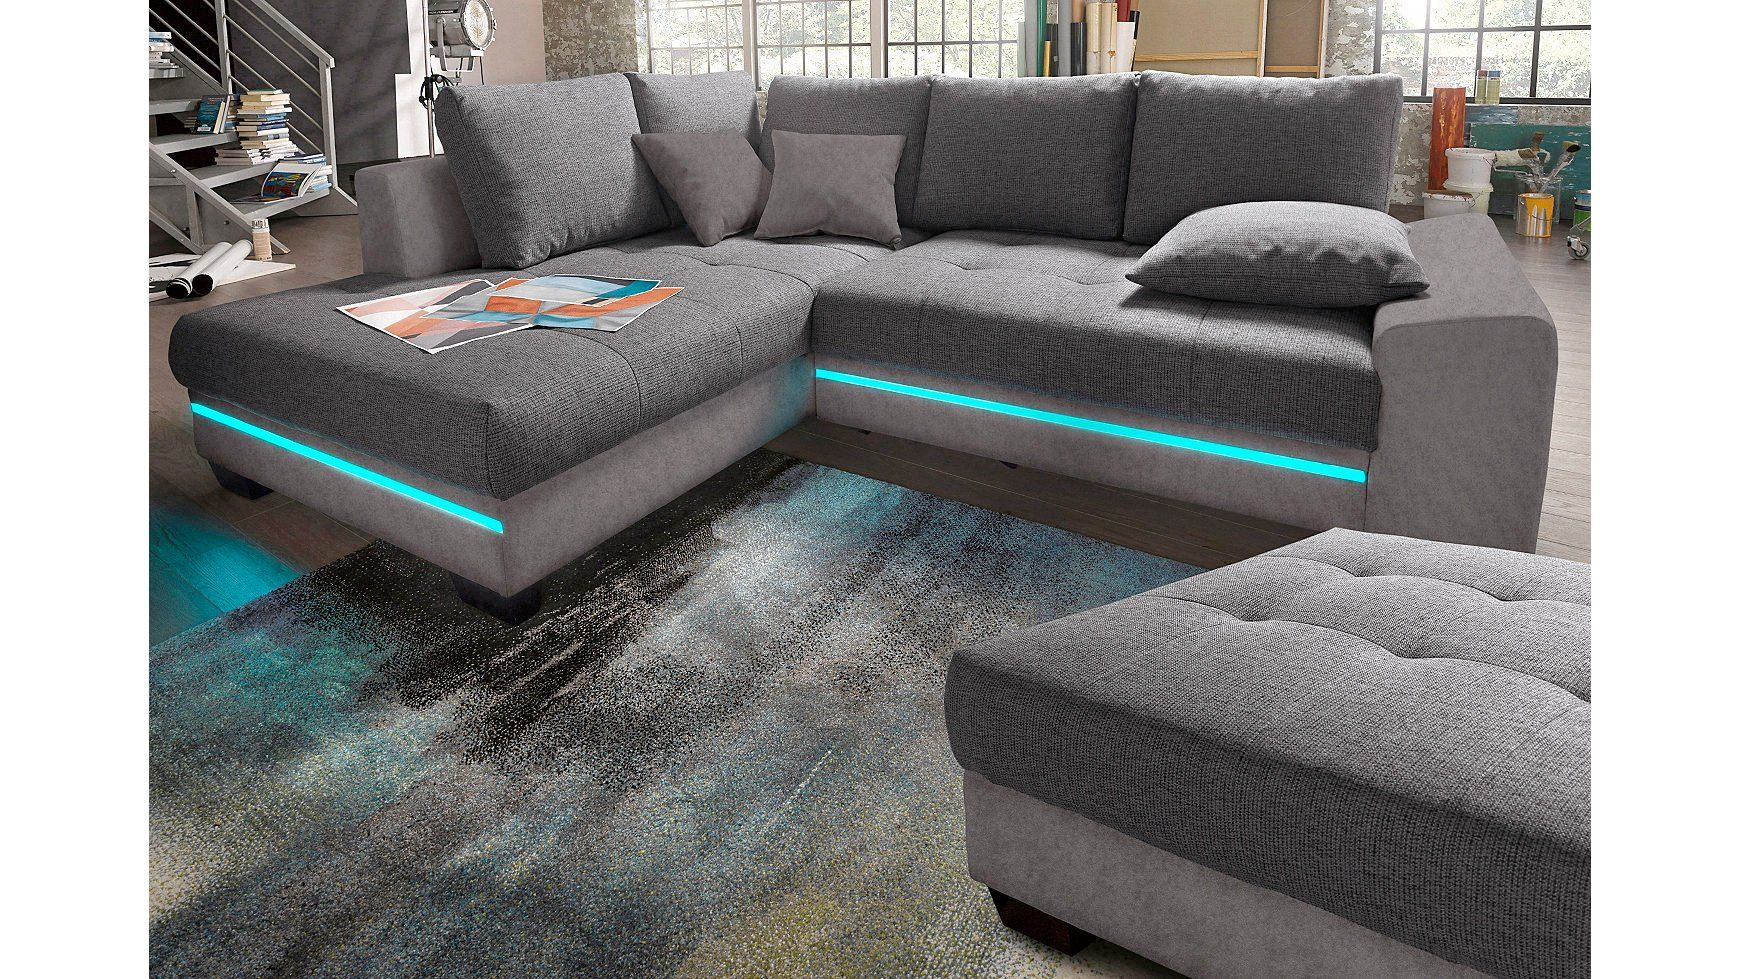 Big-sofa, Energieeffizienz: A Grijs In Je Woonkamer Interieur Living Tomorrow Bankstel Sofa